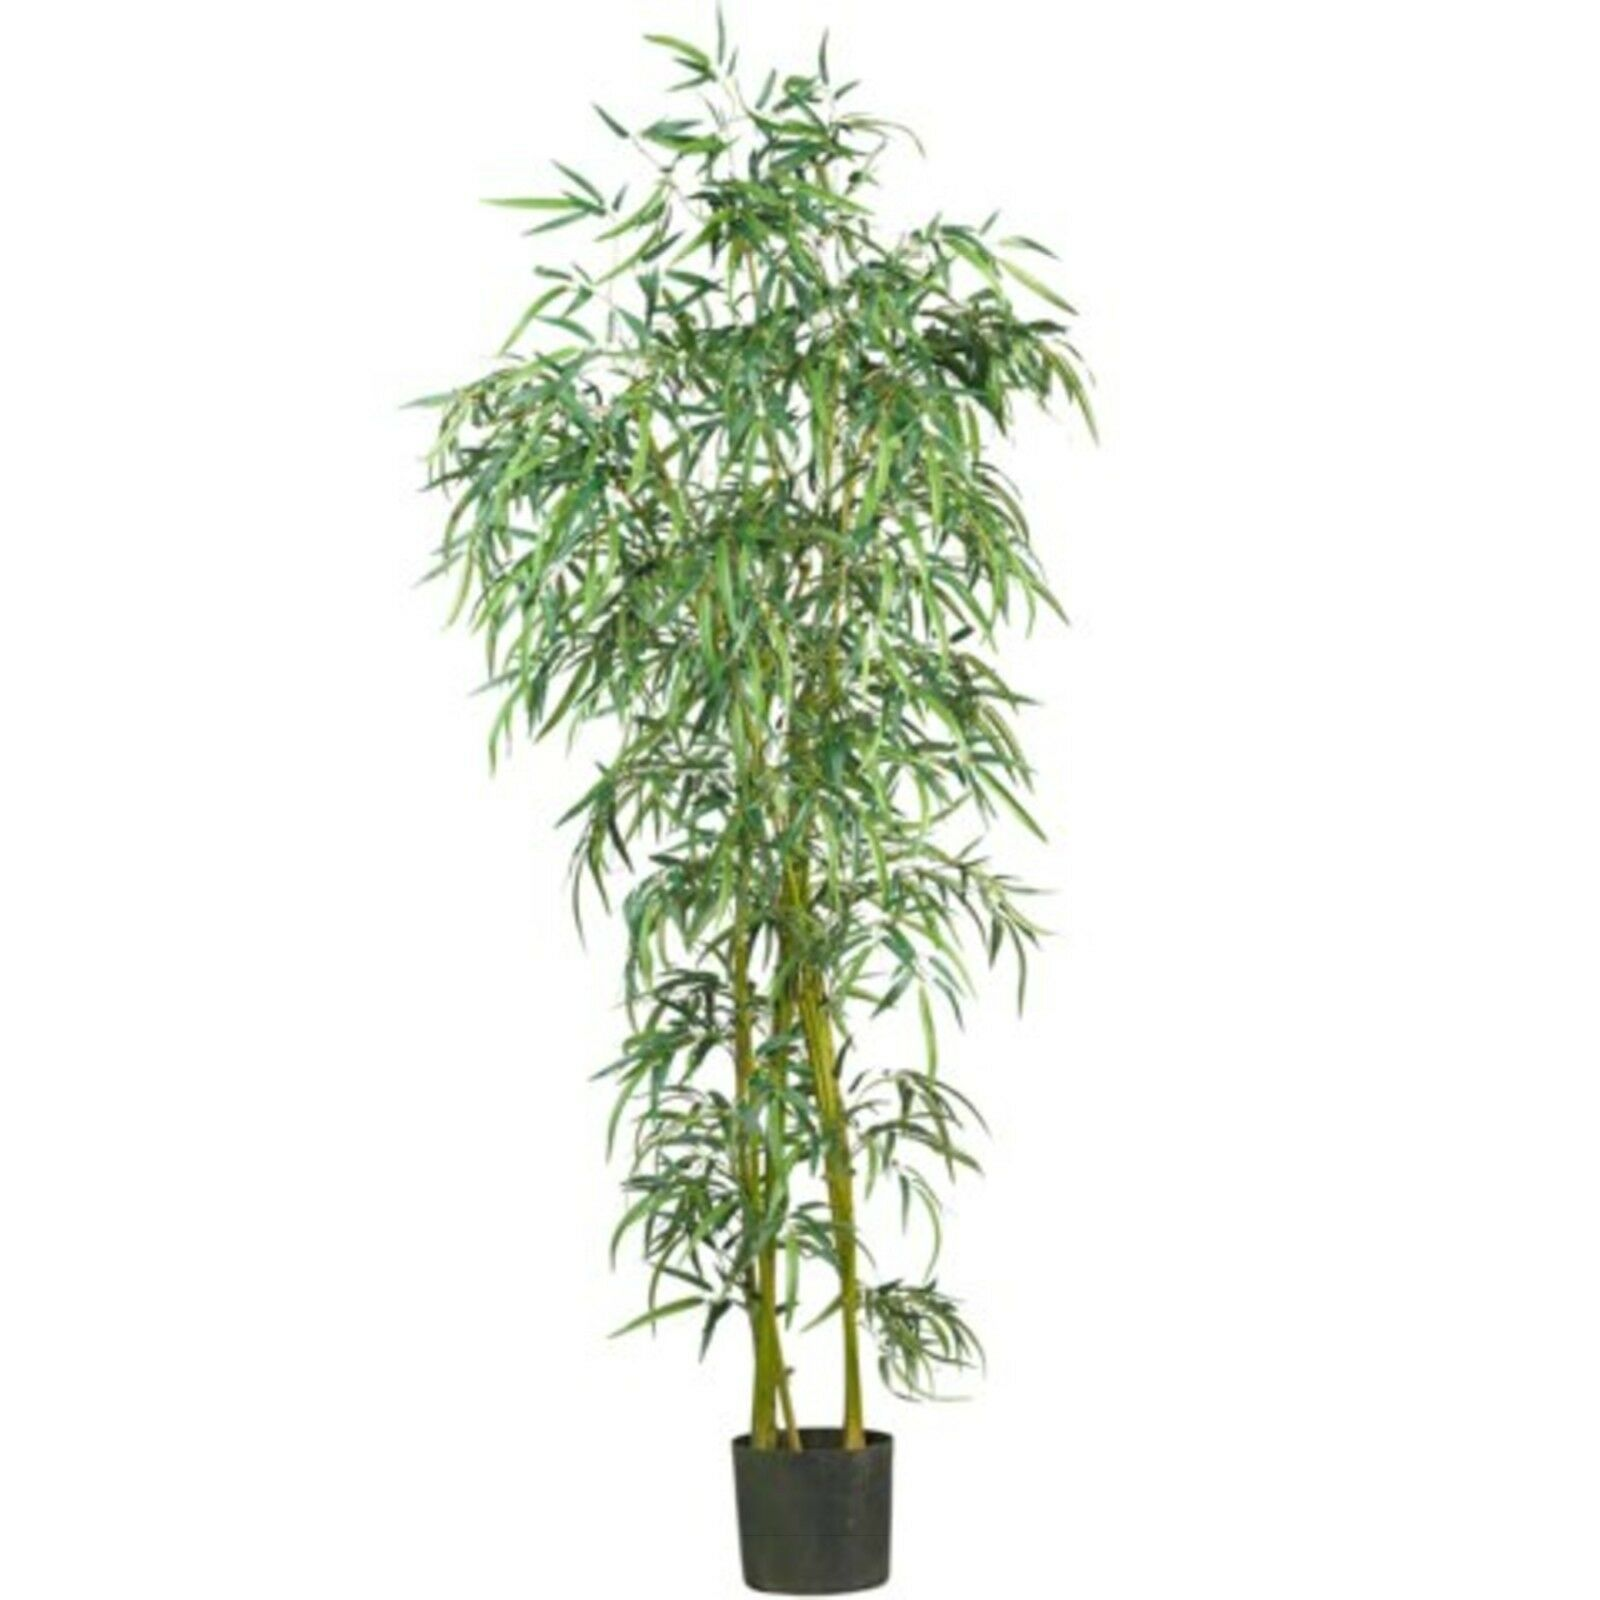 Decorative Natural Looking Artificial 6' Fancy Asian Slim Bamboo Silk Tree Plant